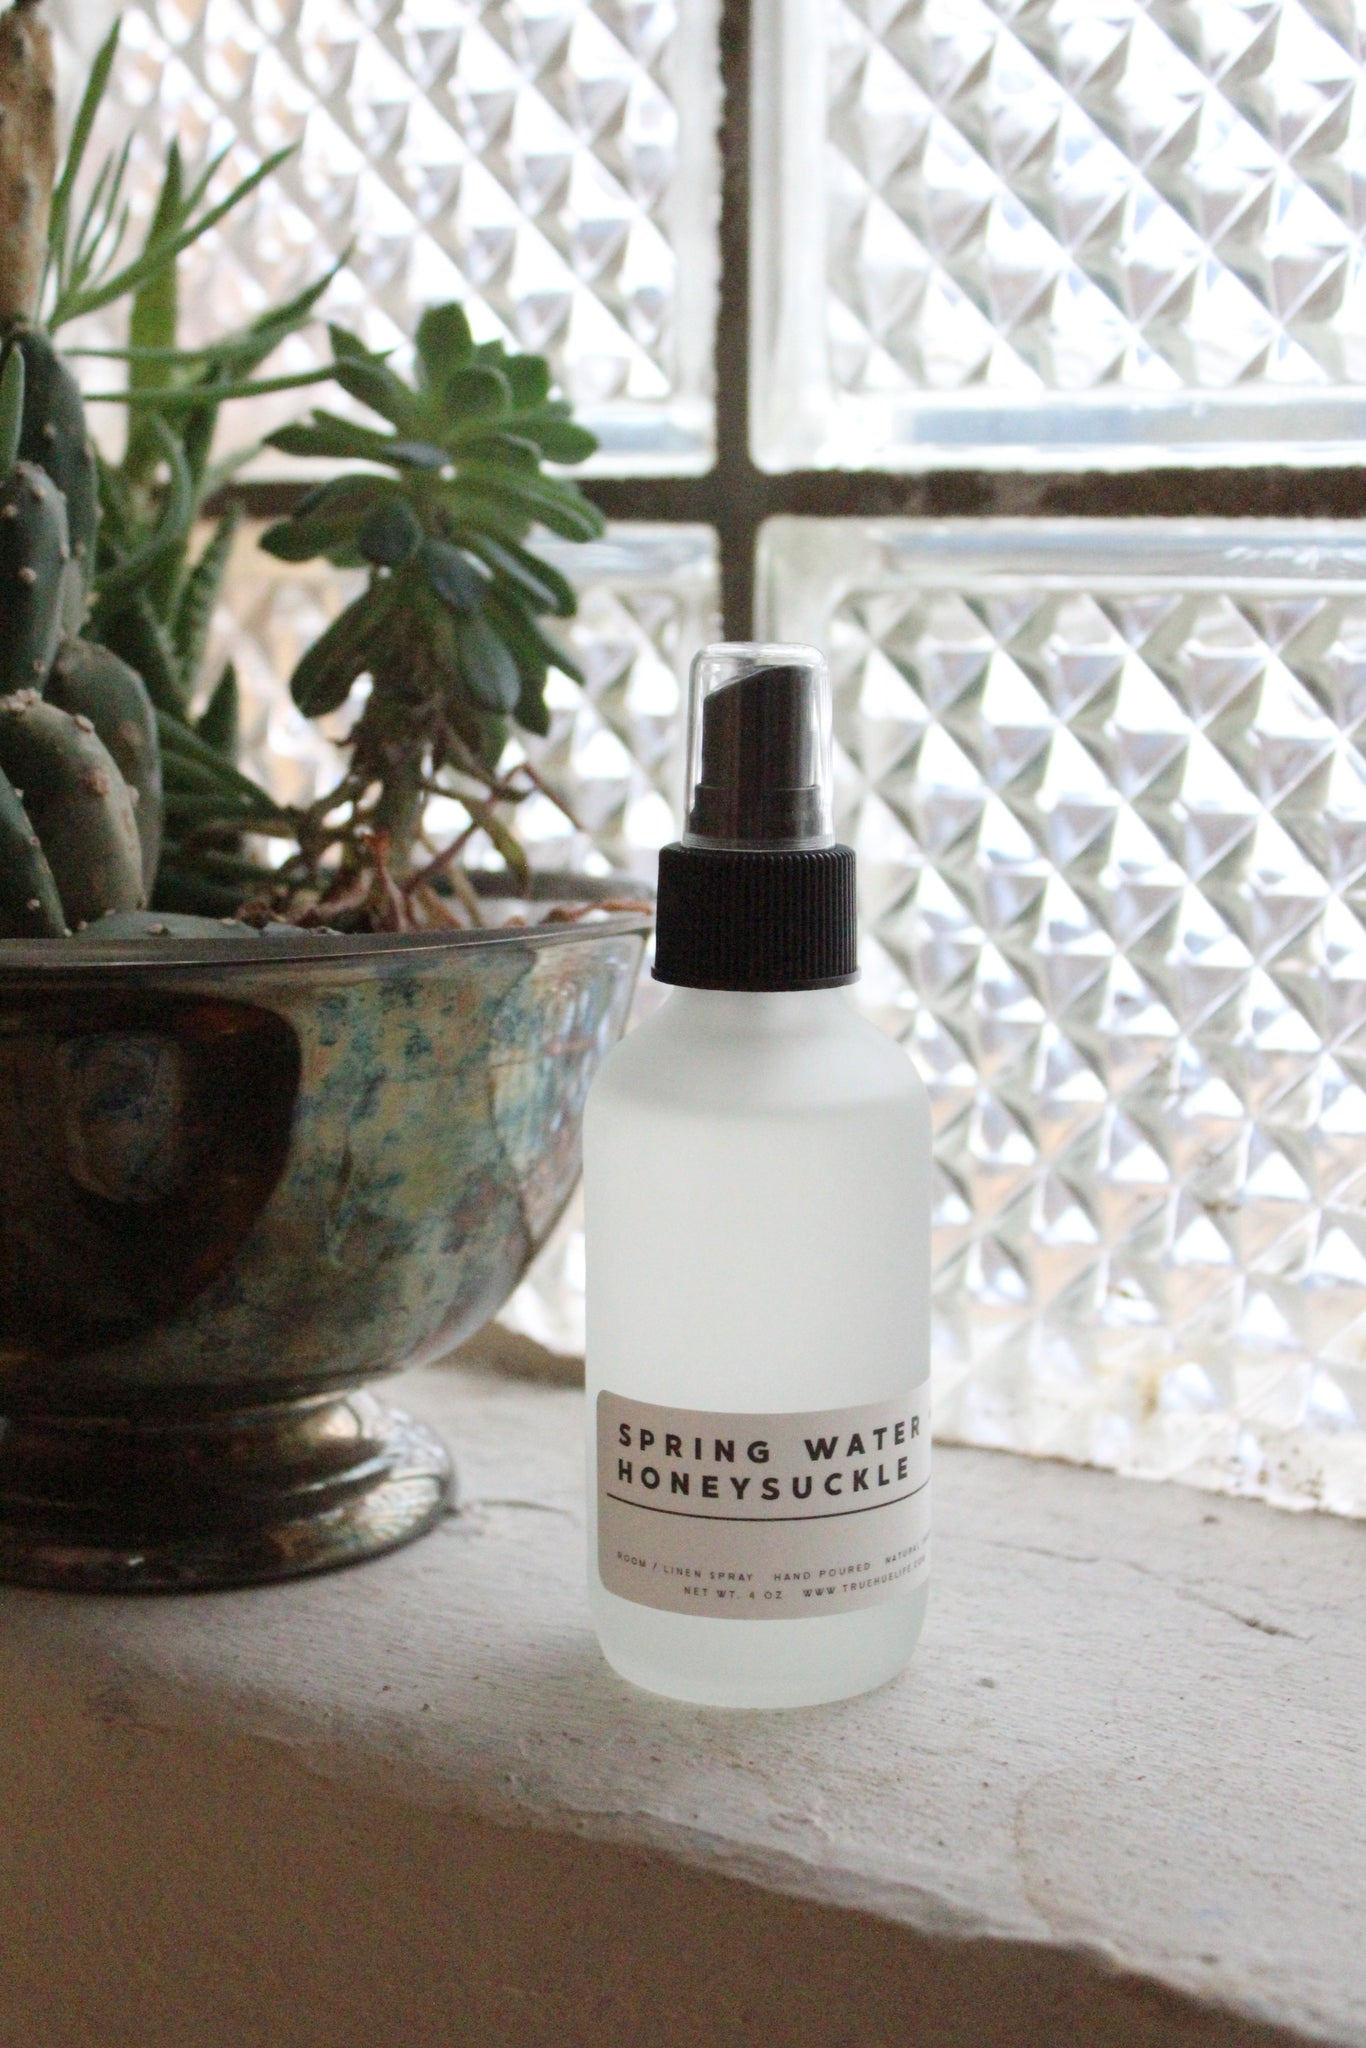 Spring Water + Honeysuckle Room/Linen Spray